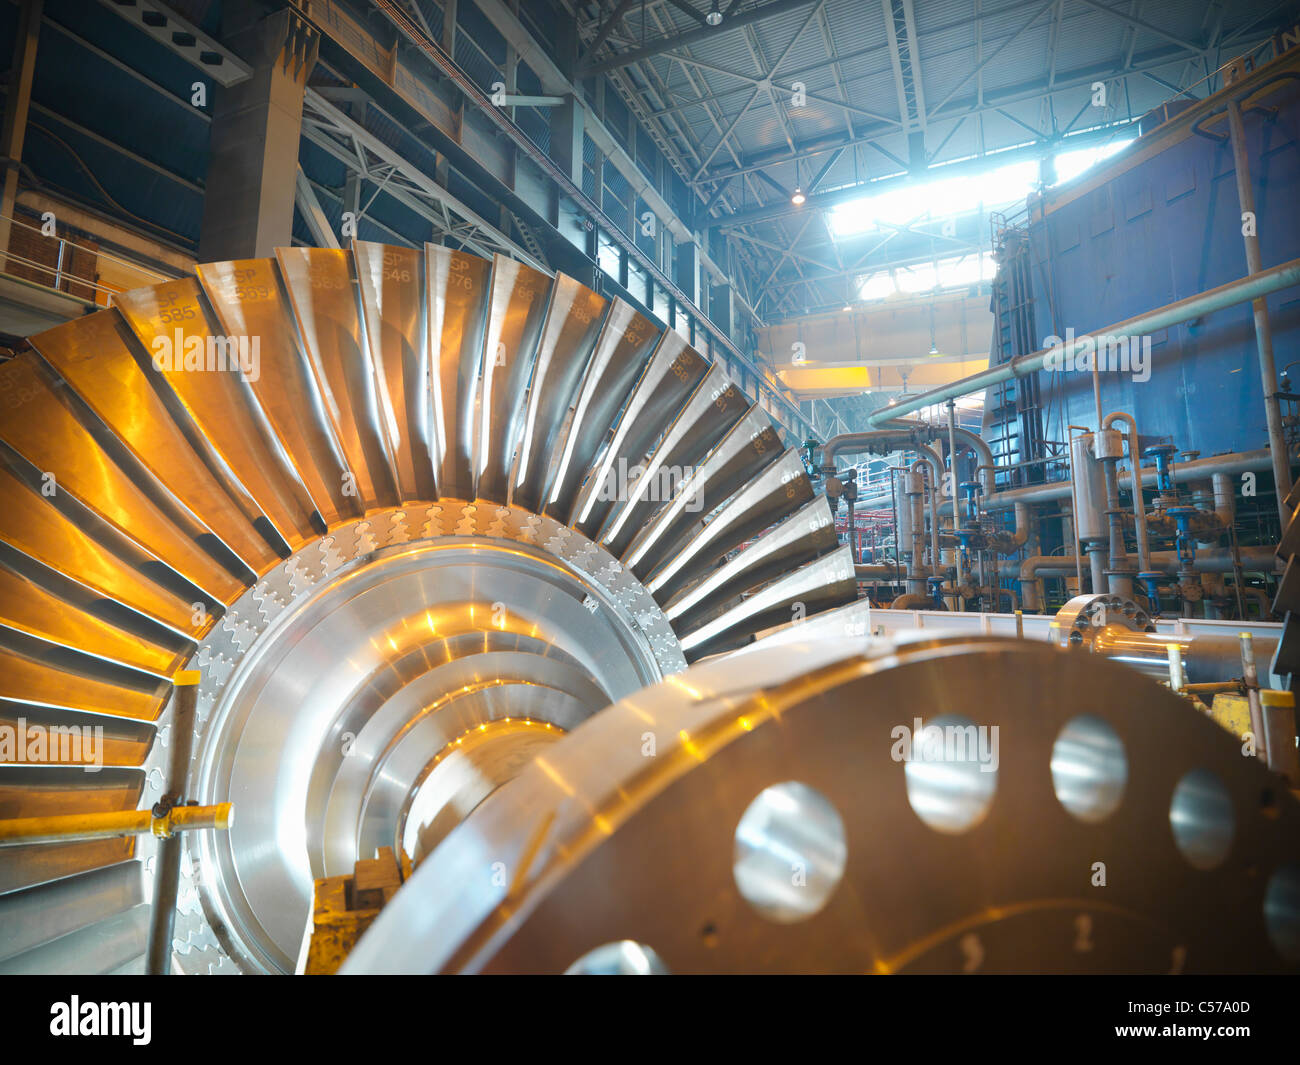 Turbine in power station - Stock Image